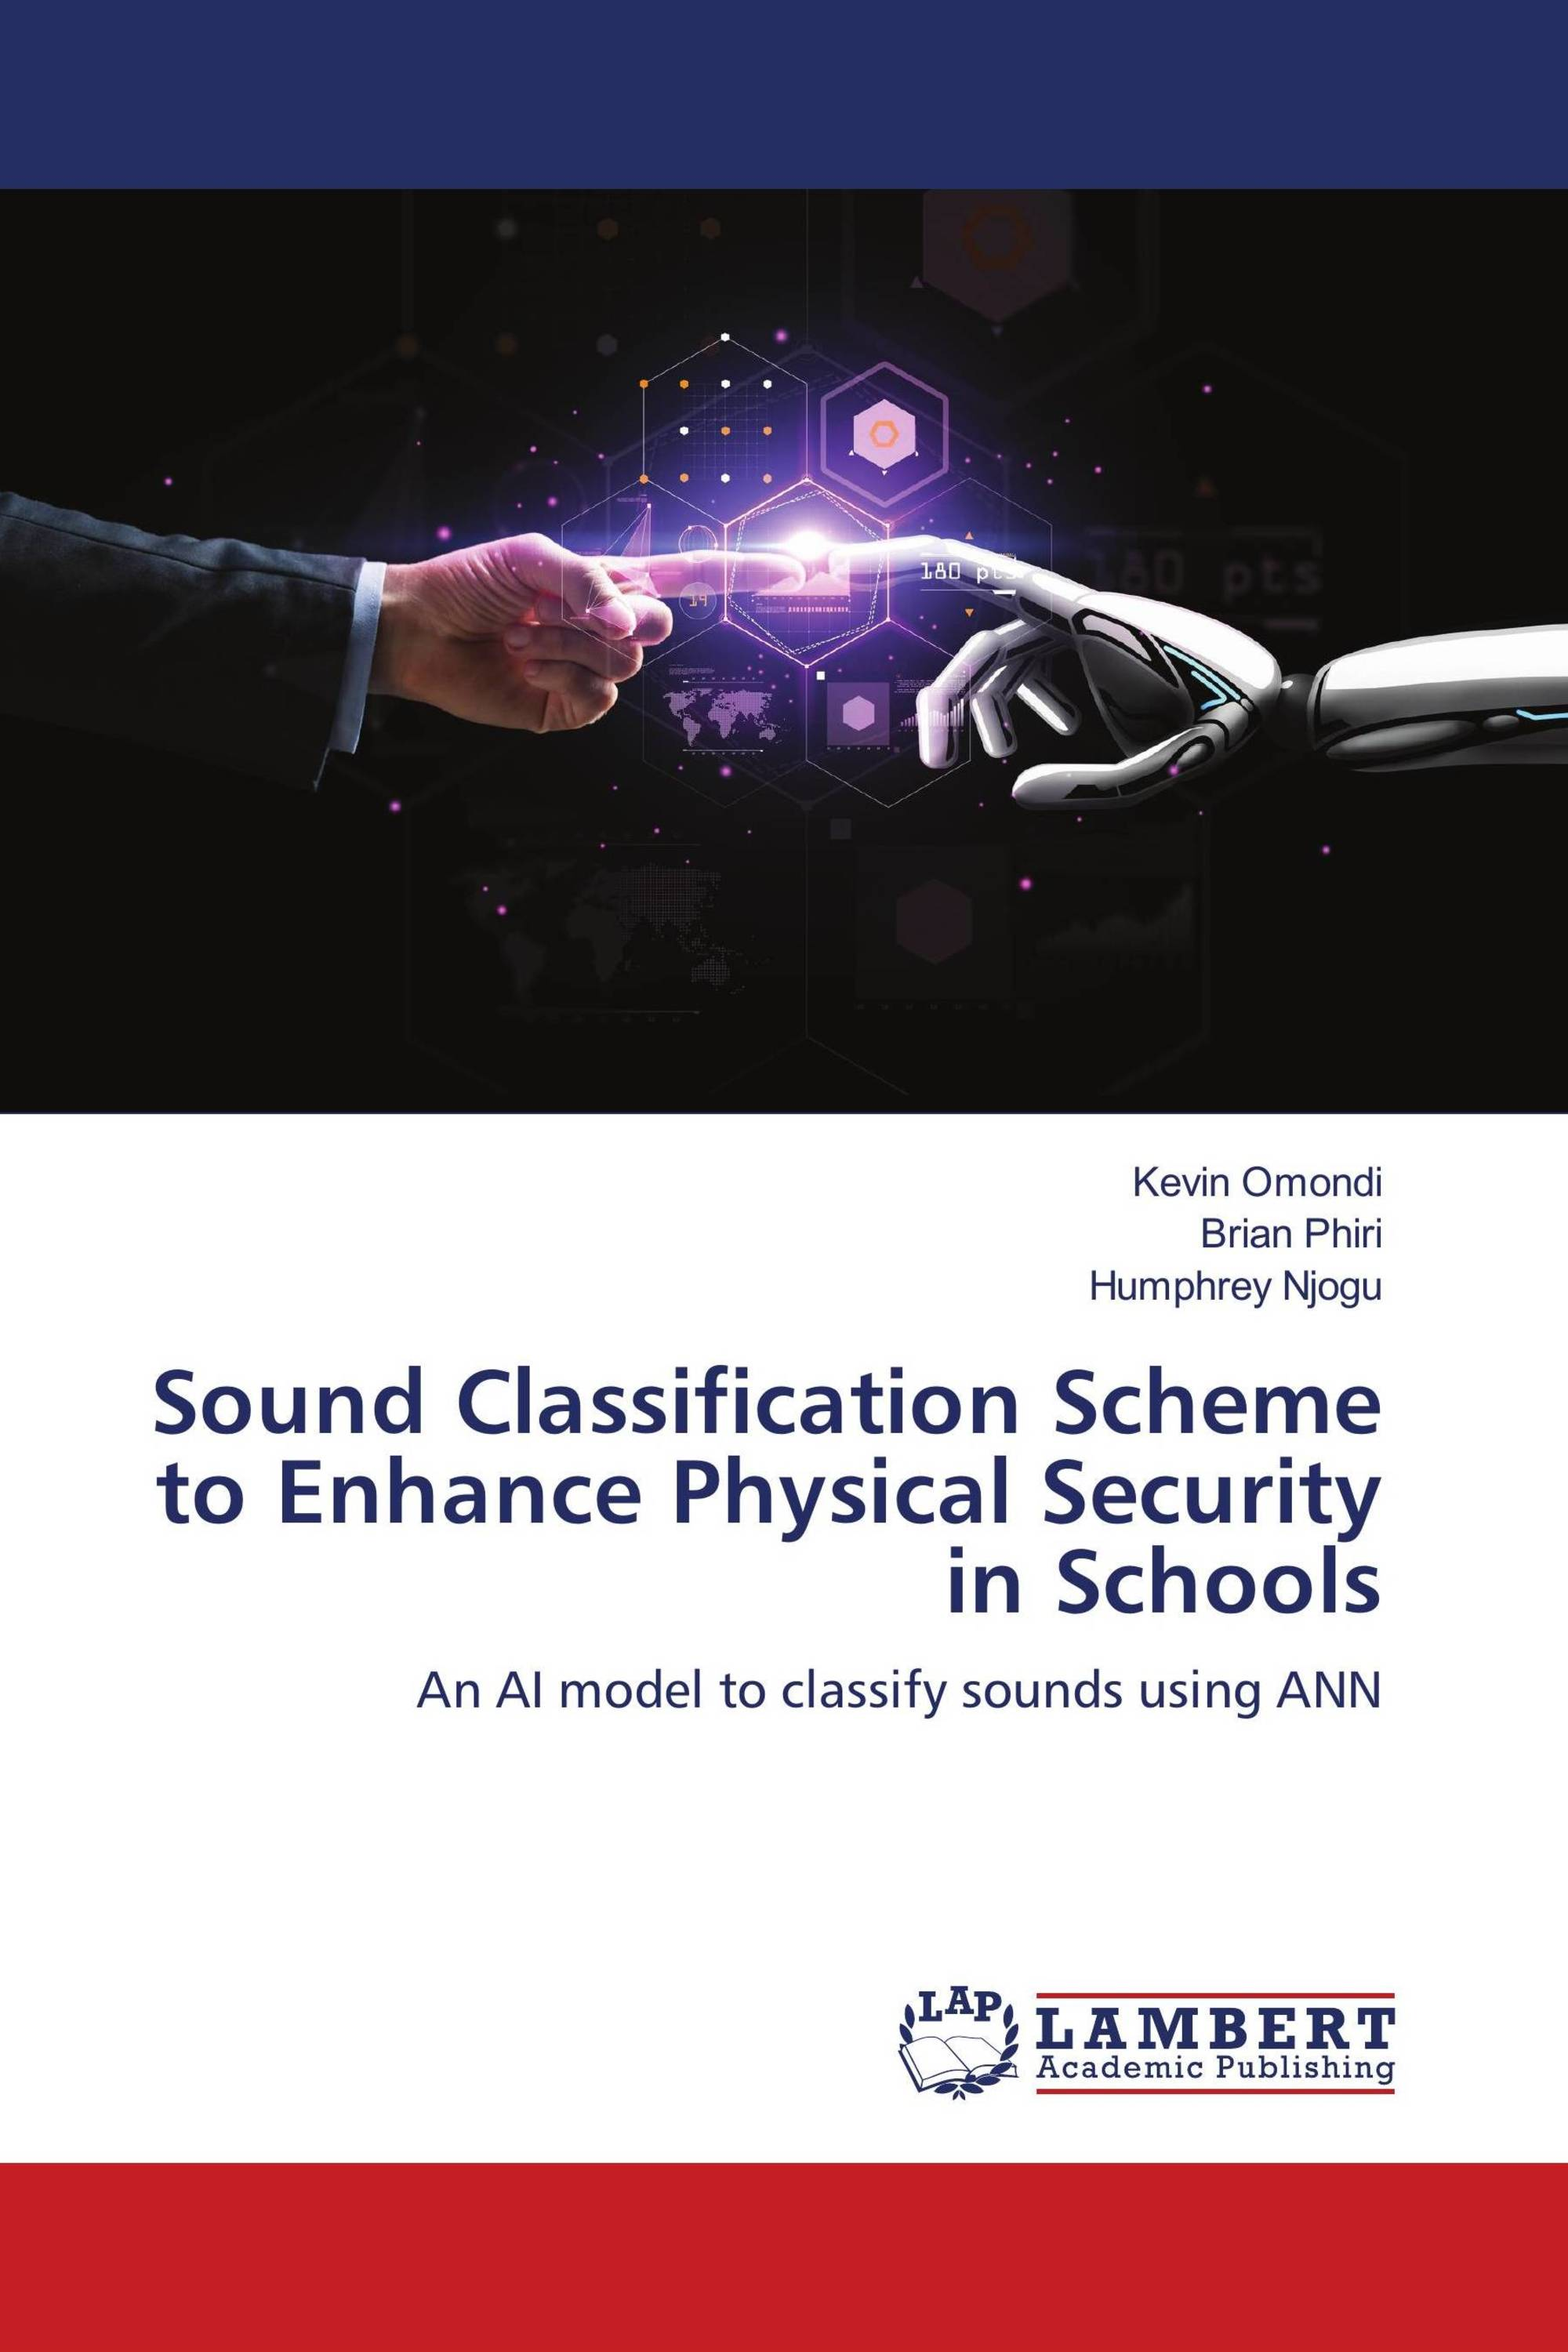 Sound Classification Scheme to Enhance Physical Security in